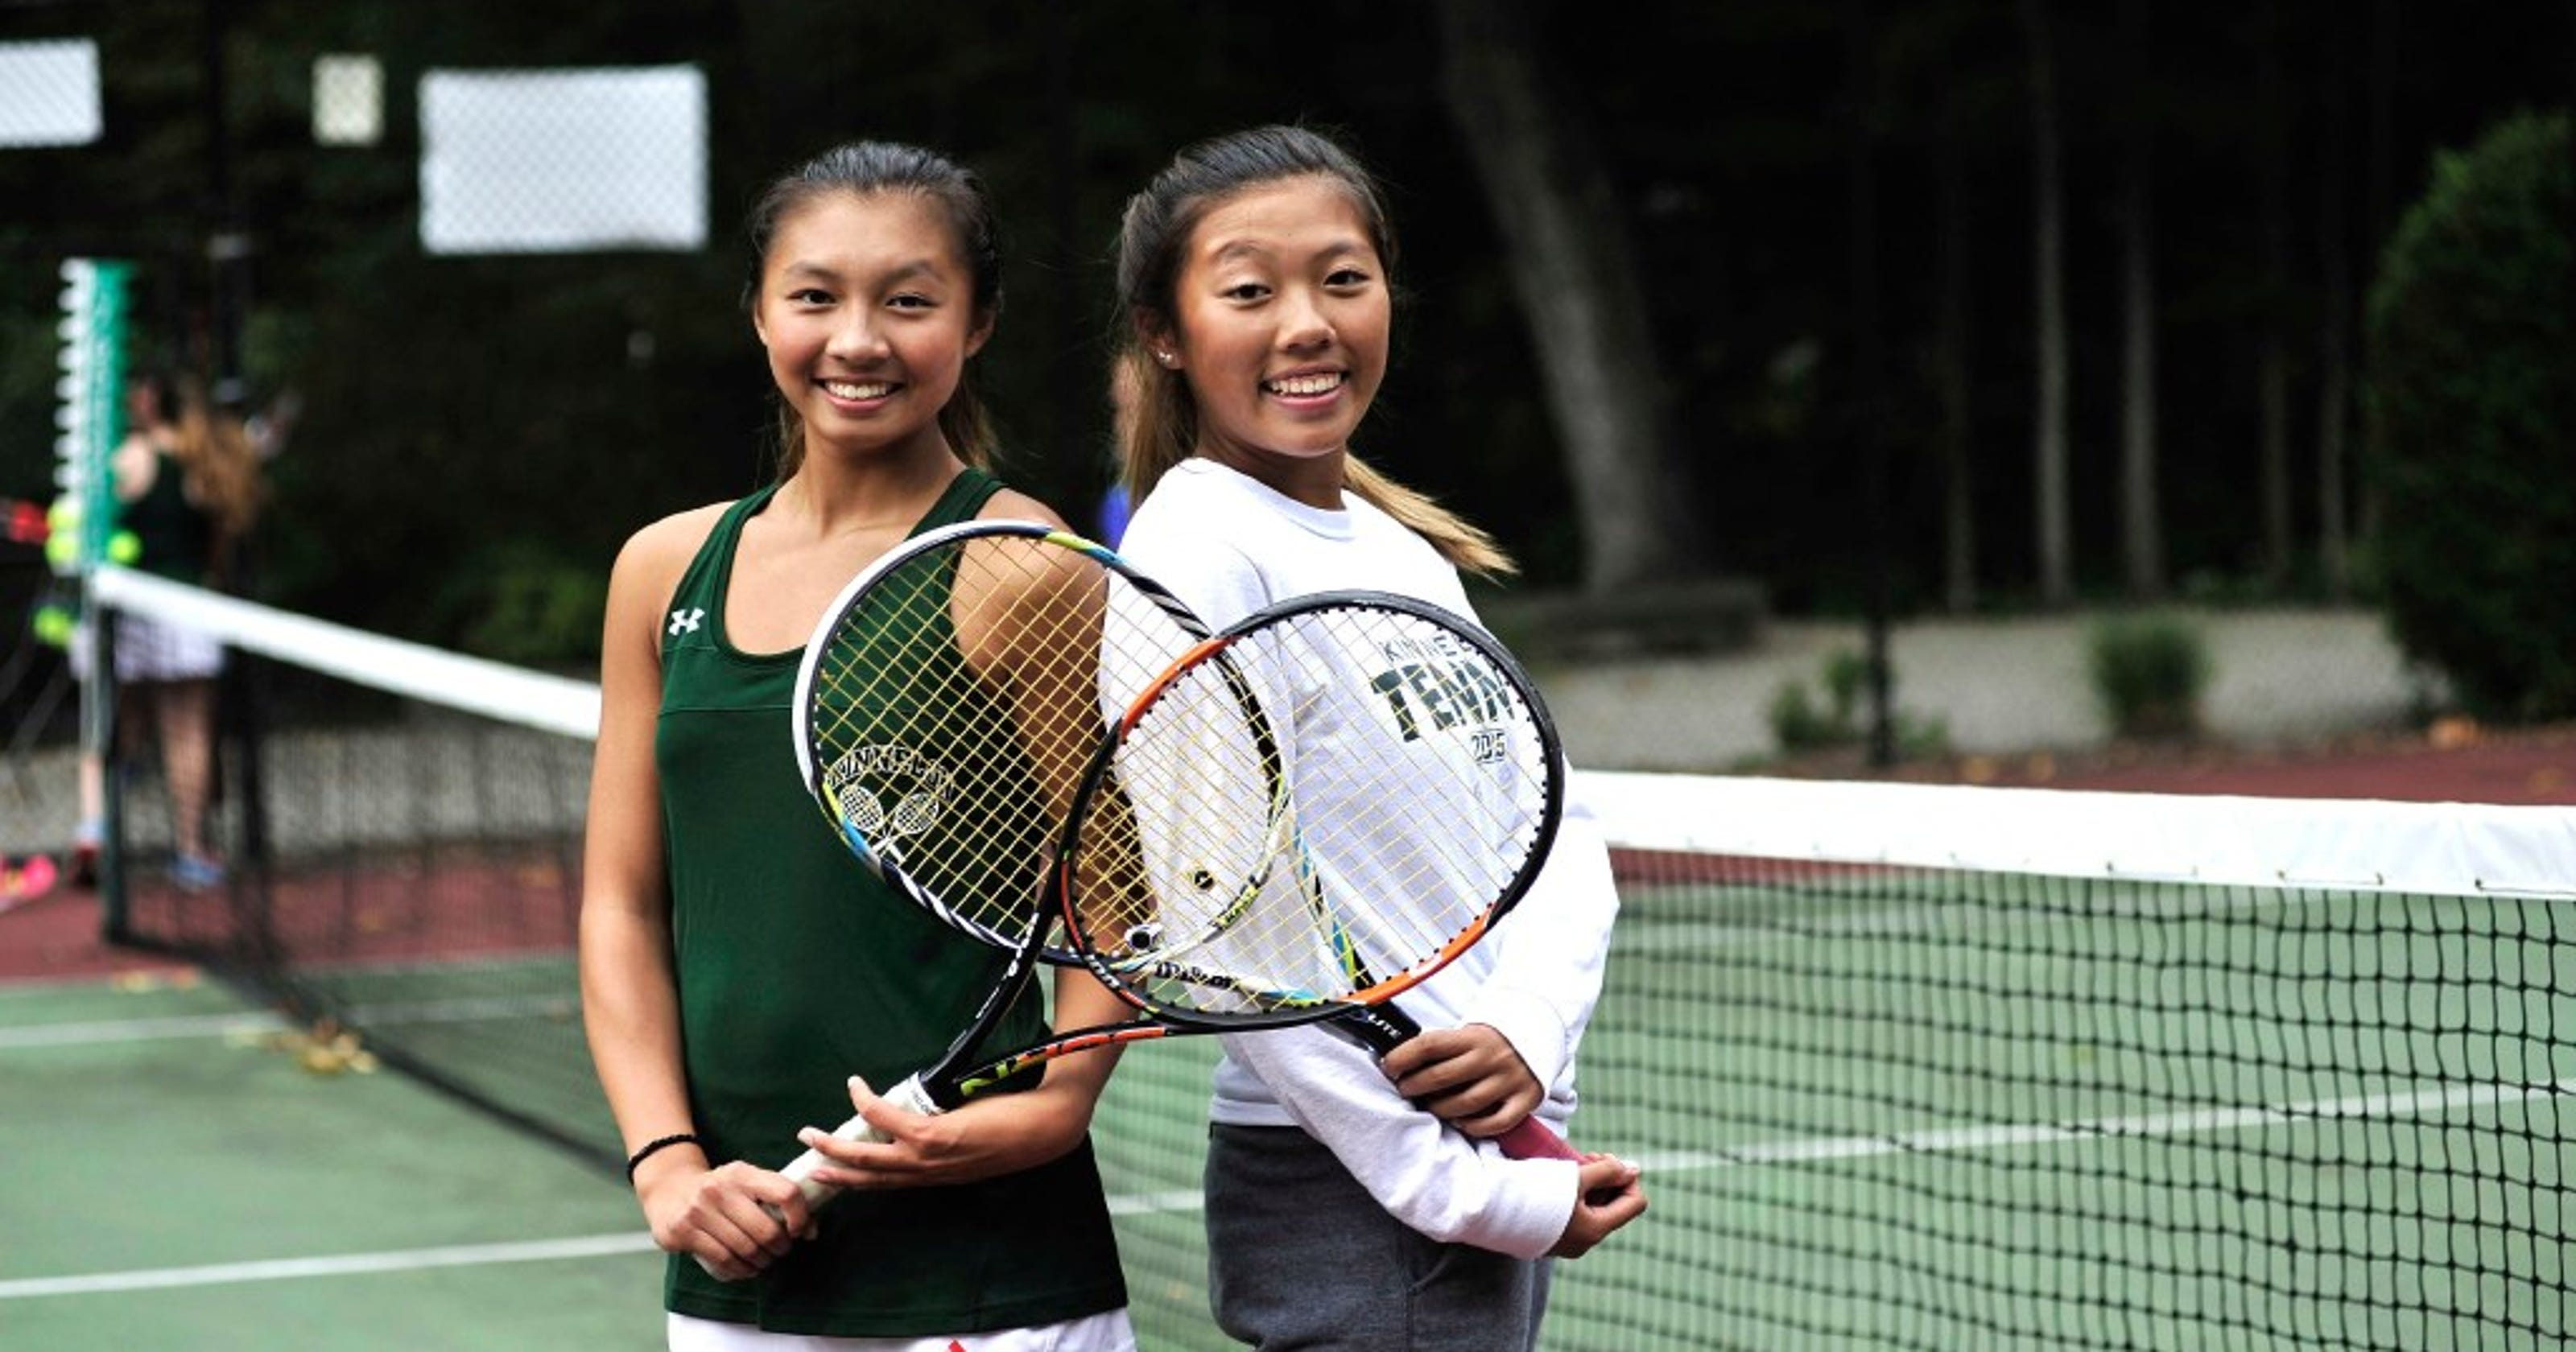 new concept f5285 35b10 Tennis  Kinnelon edges Cresskill to advance to sectional final